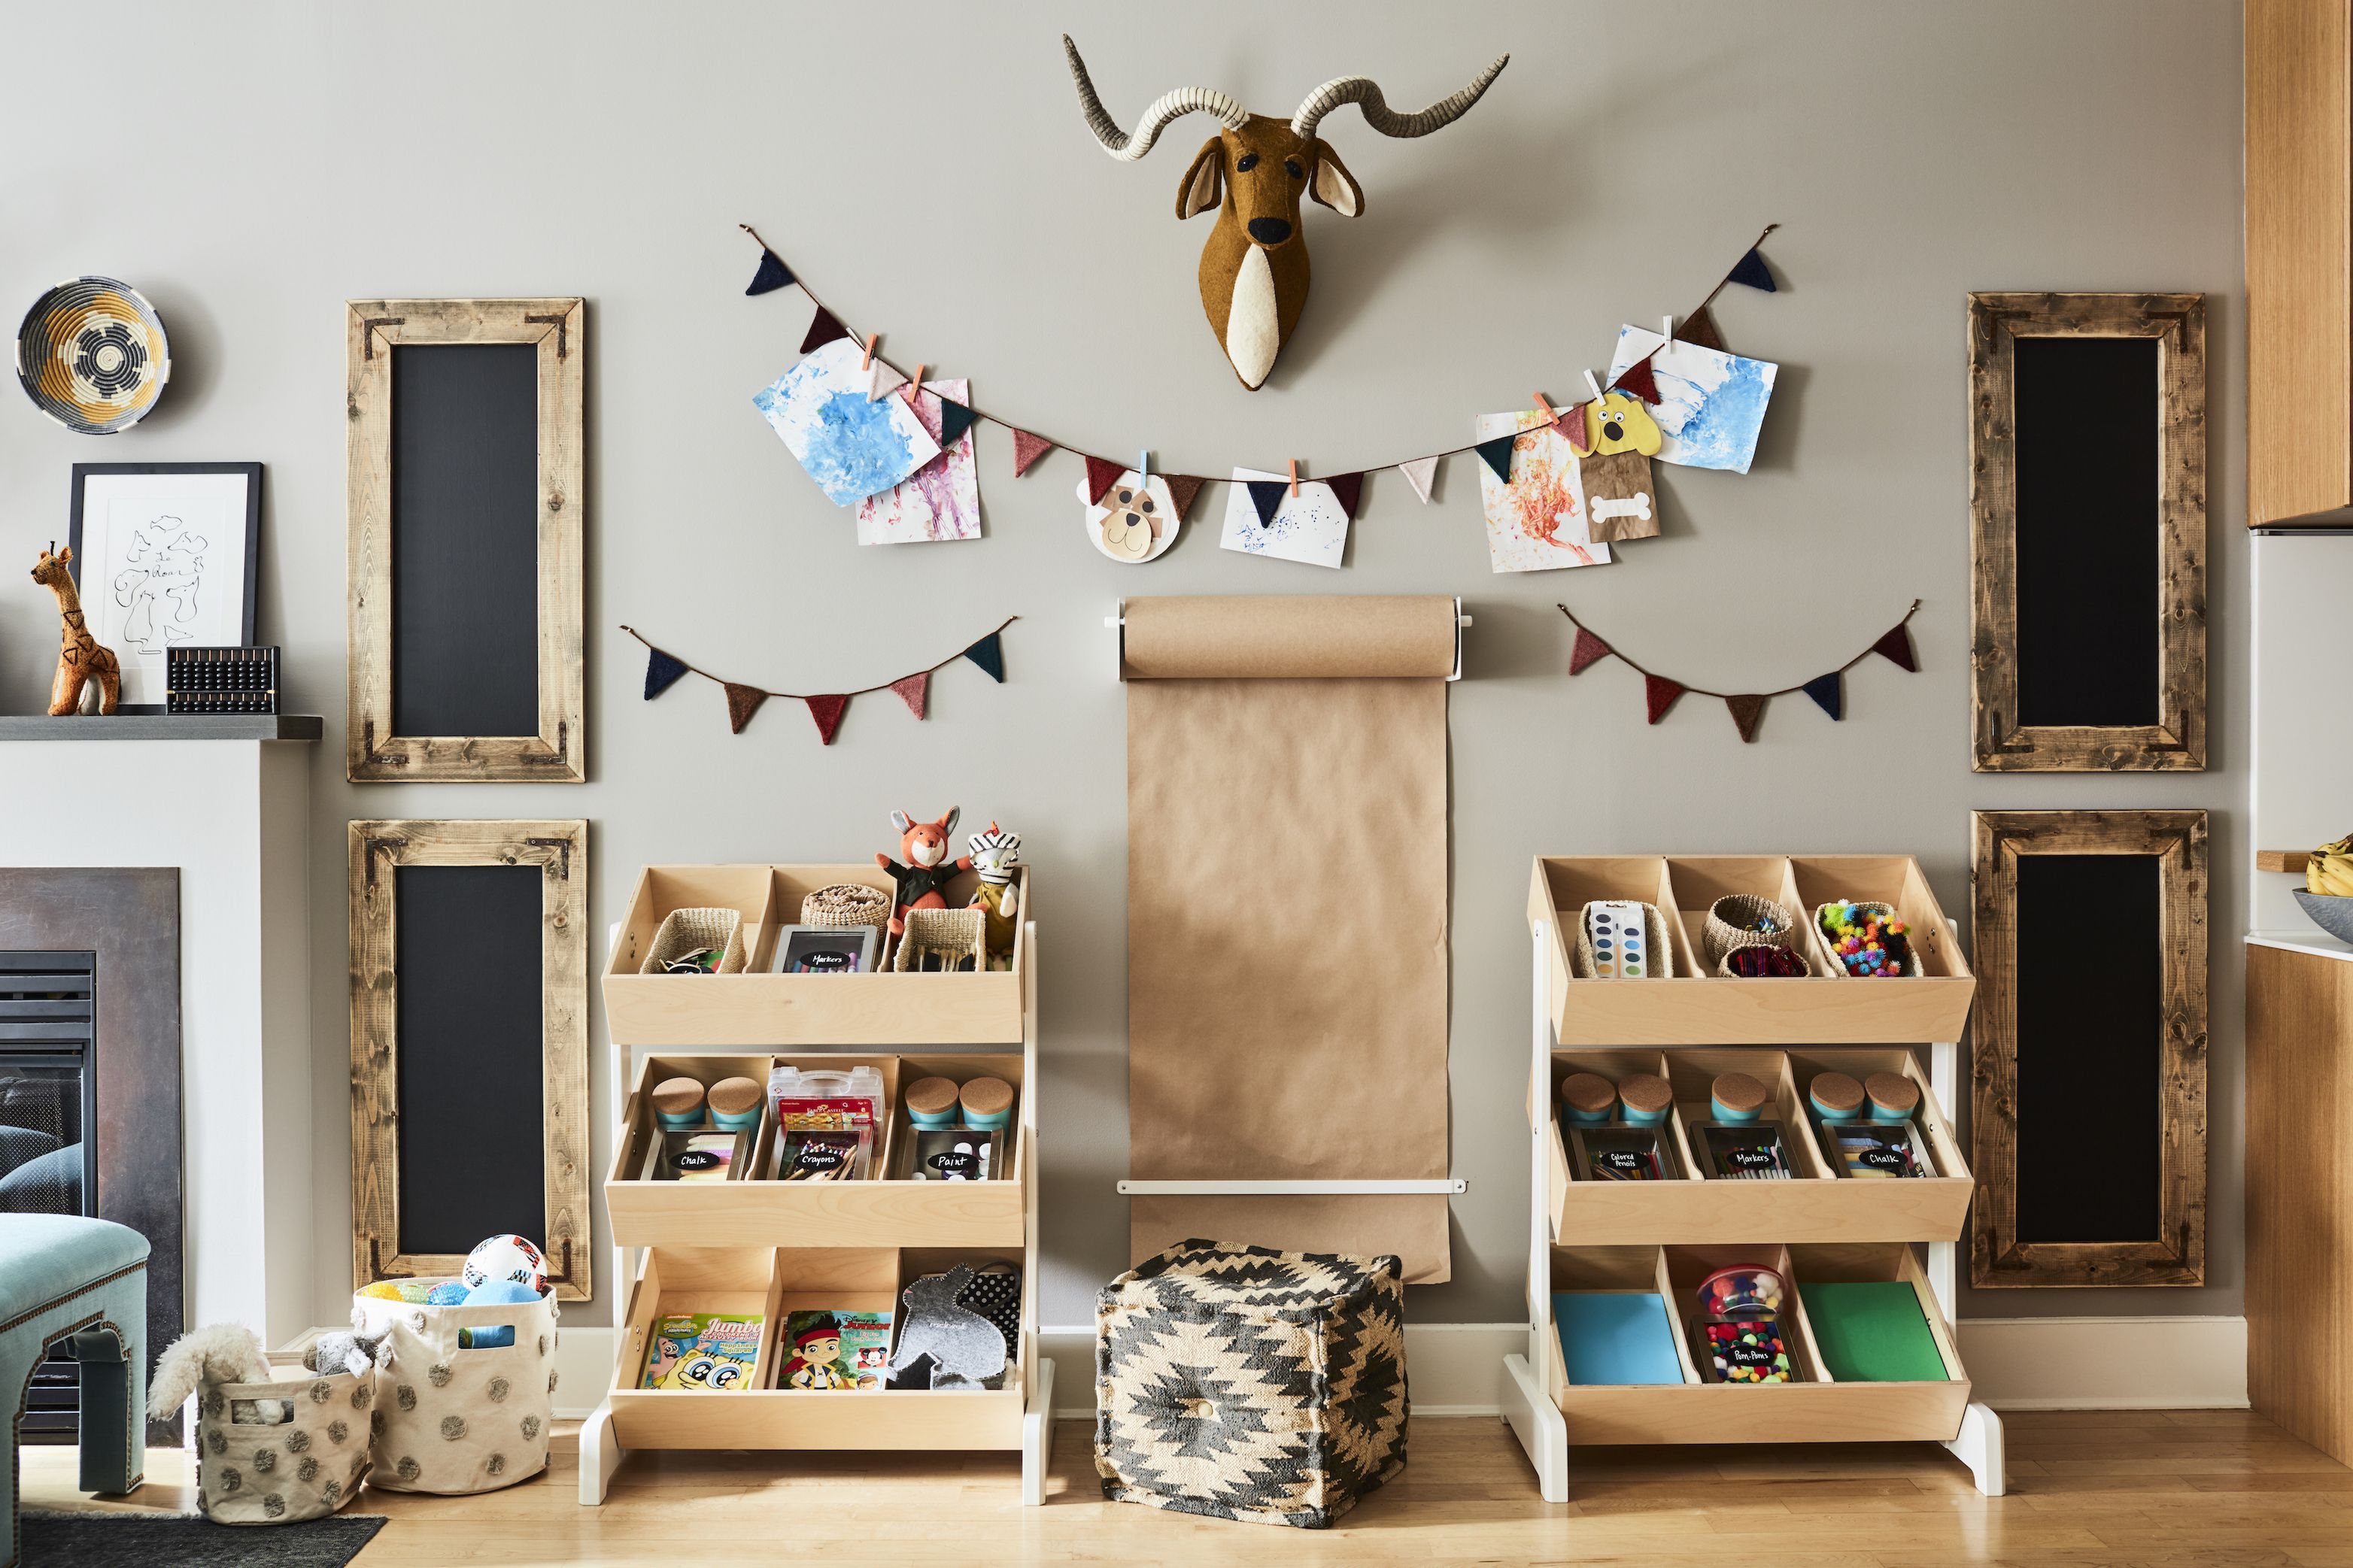 images Bedroom Toy Storage Ideas 30 toy storage ideas how to organize